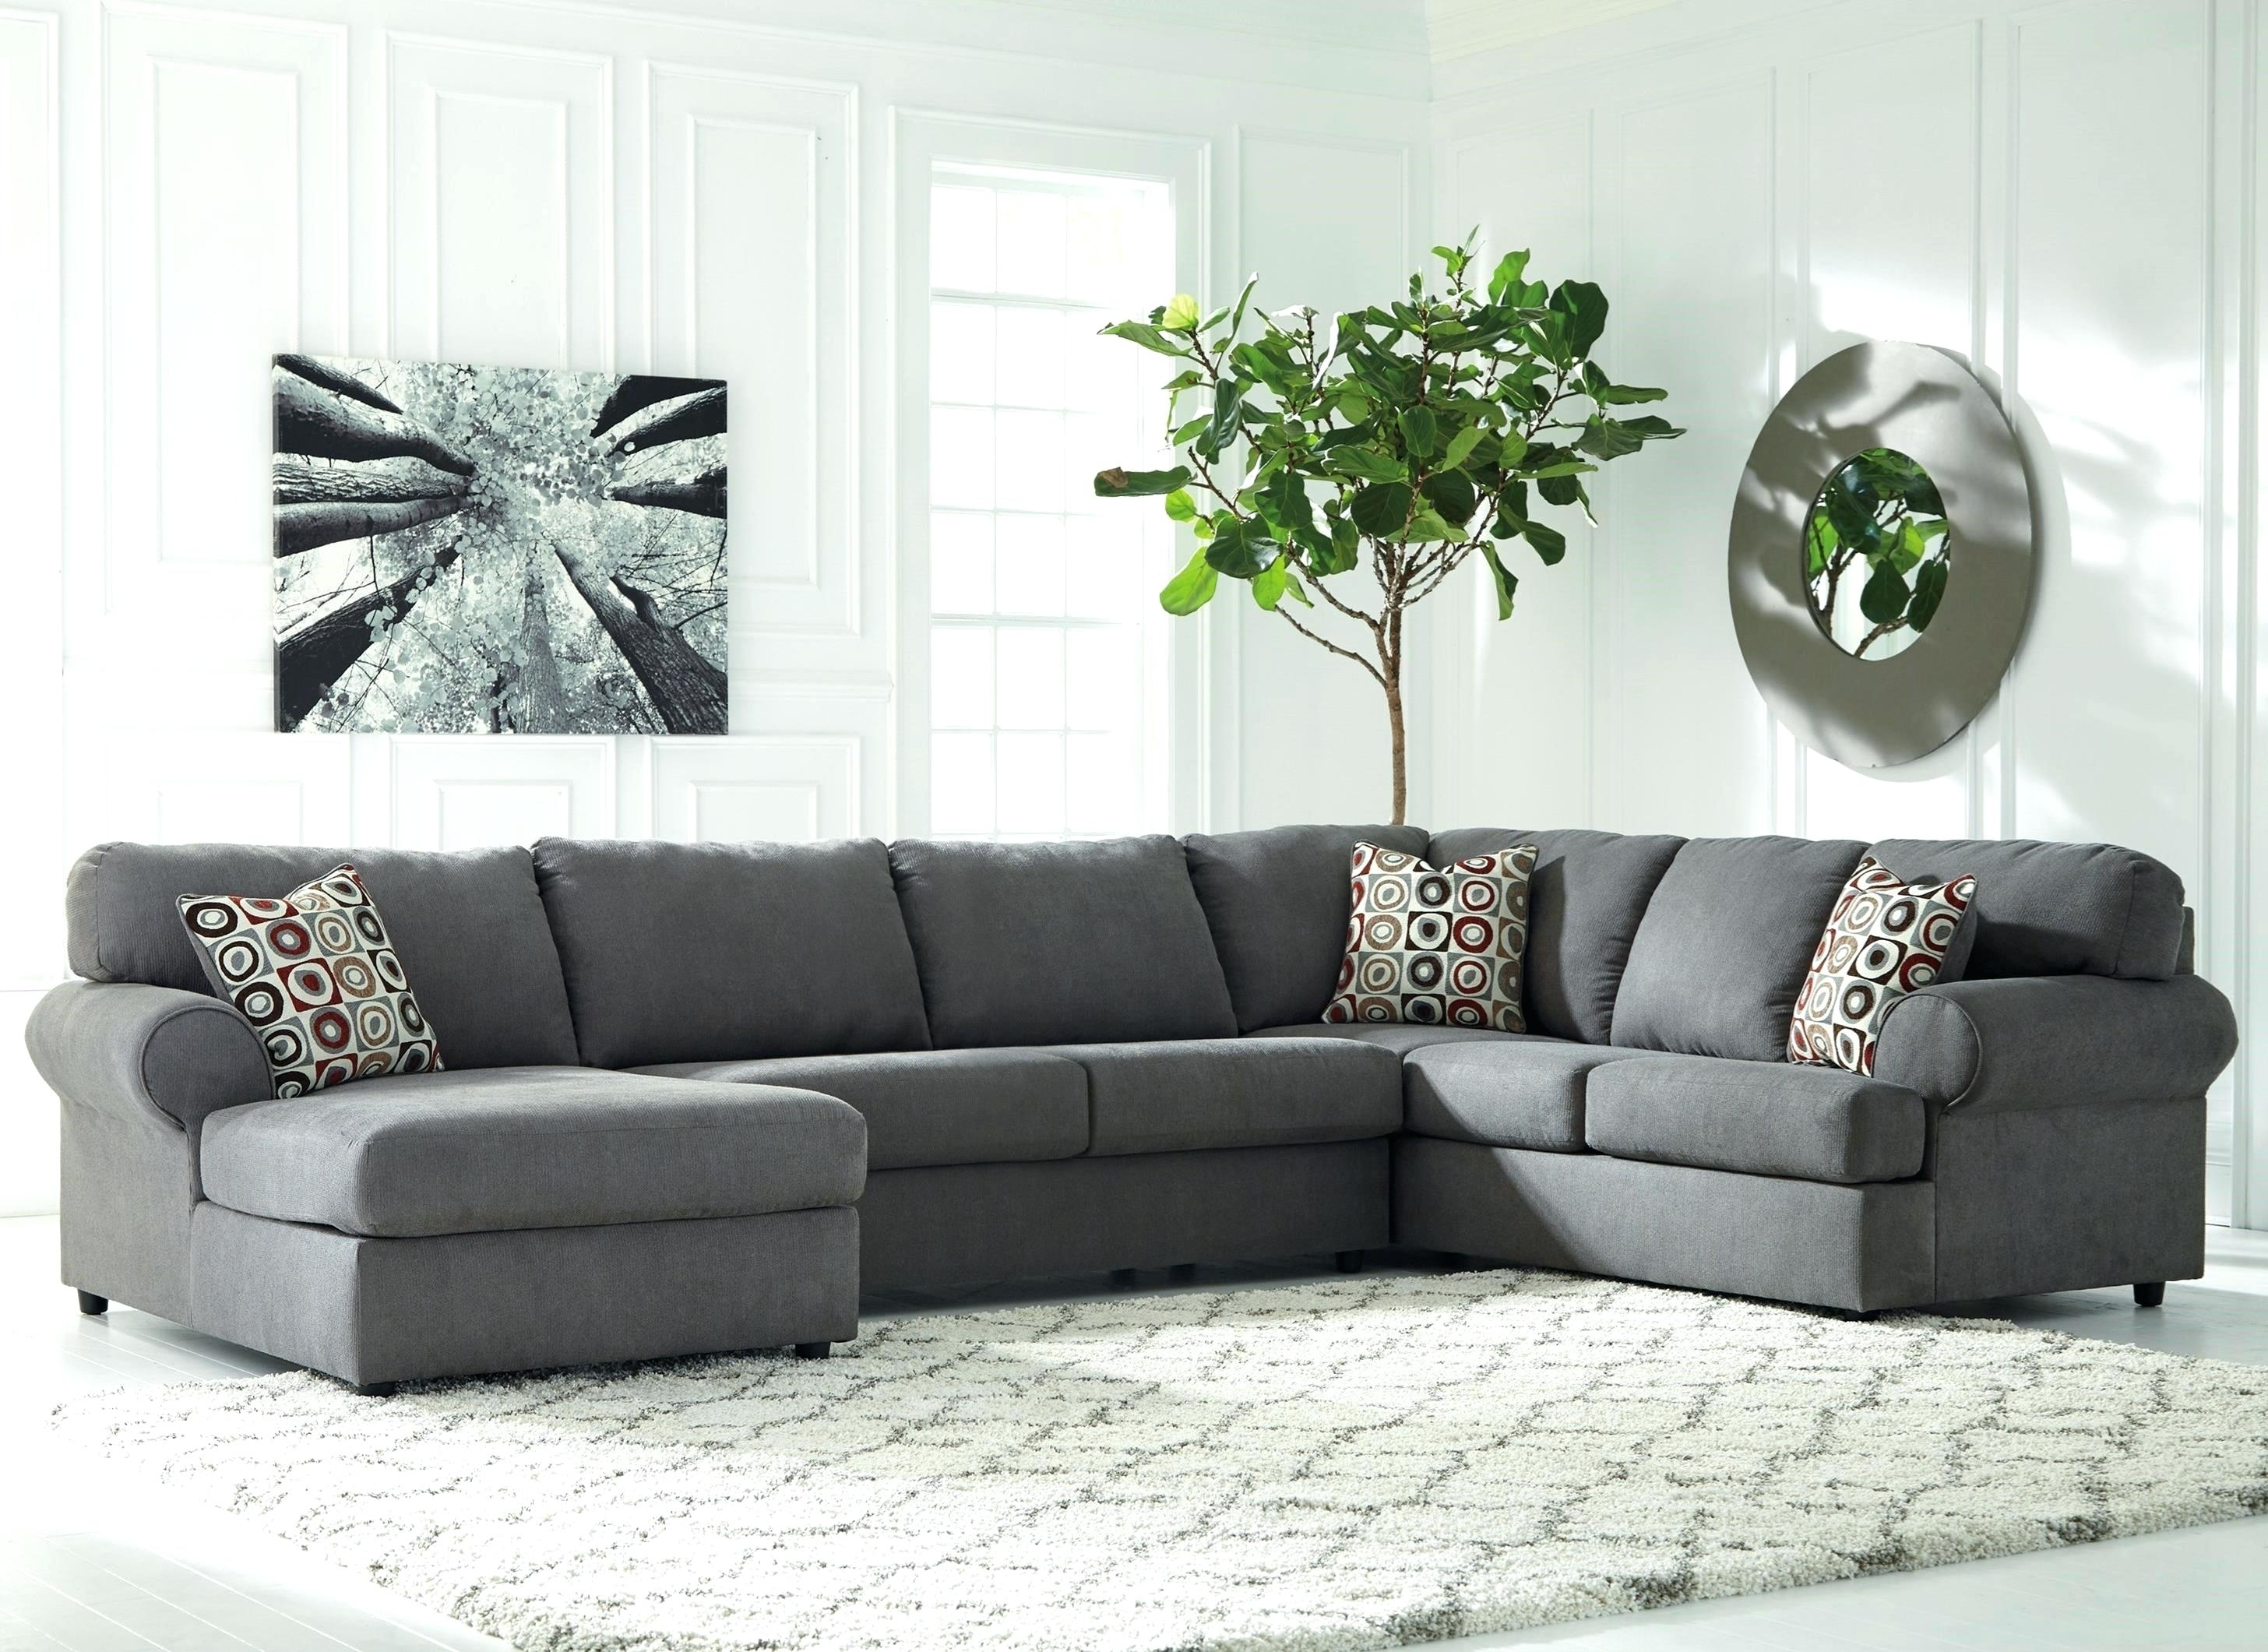 3 Piece Sectional Haven Blue Steel 3 Piece Sectional 3 Pc Reclining Within Haven Blue Steel 3 Piece Sectionals (View 4 of 25)